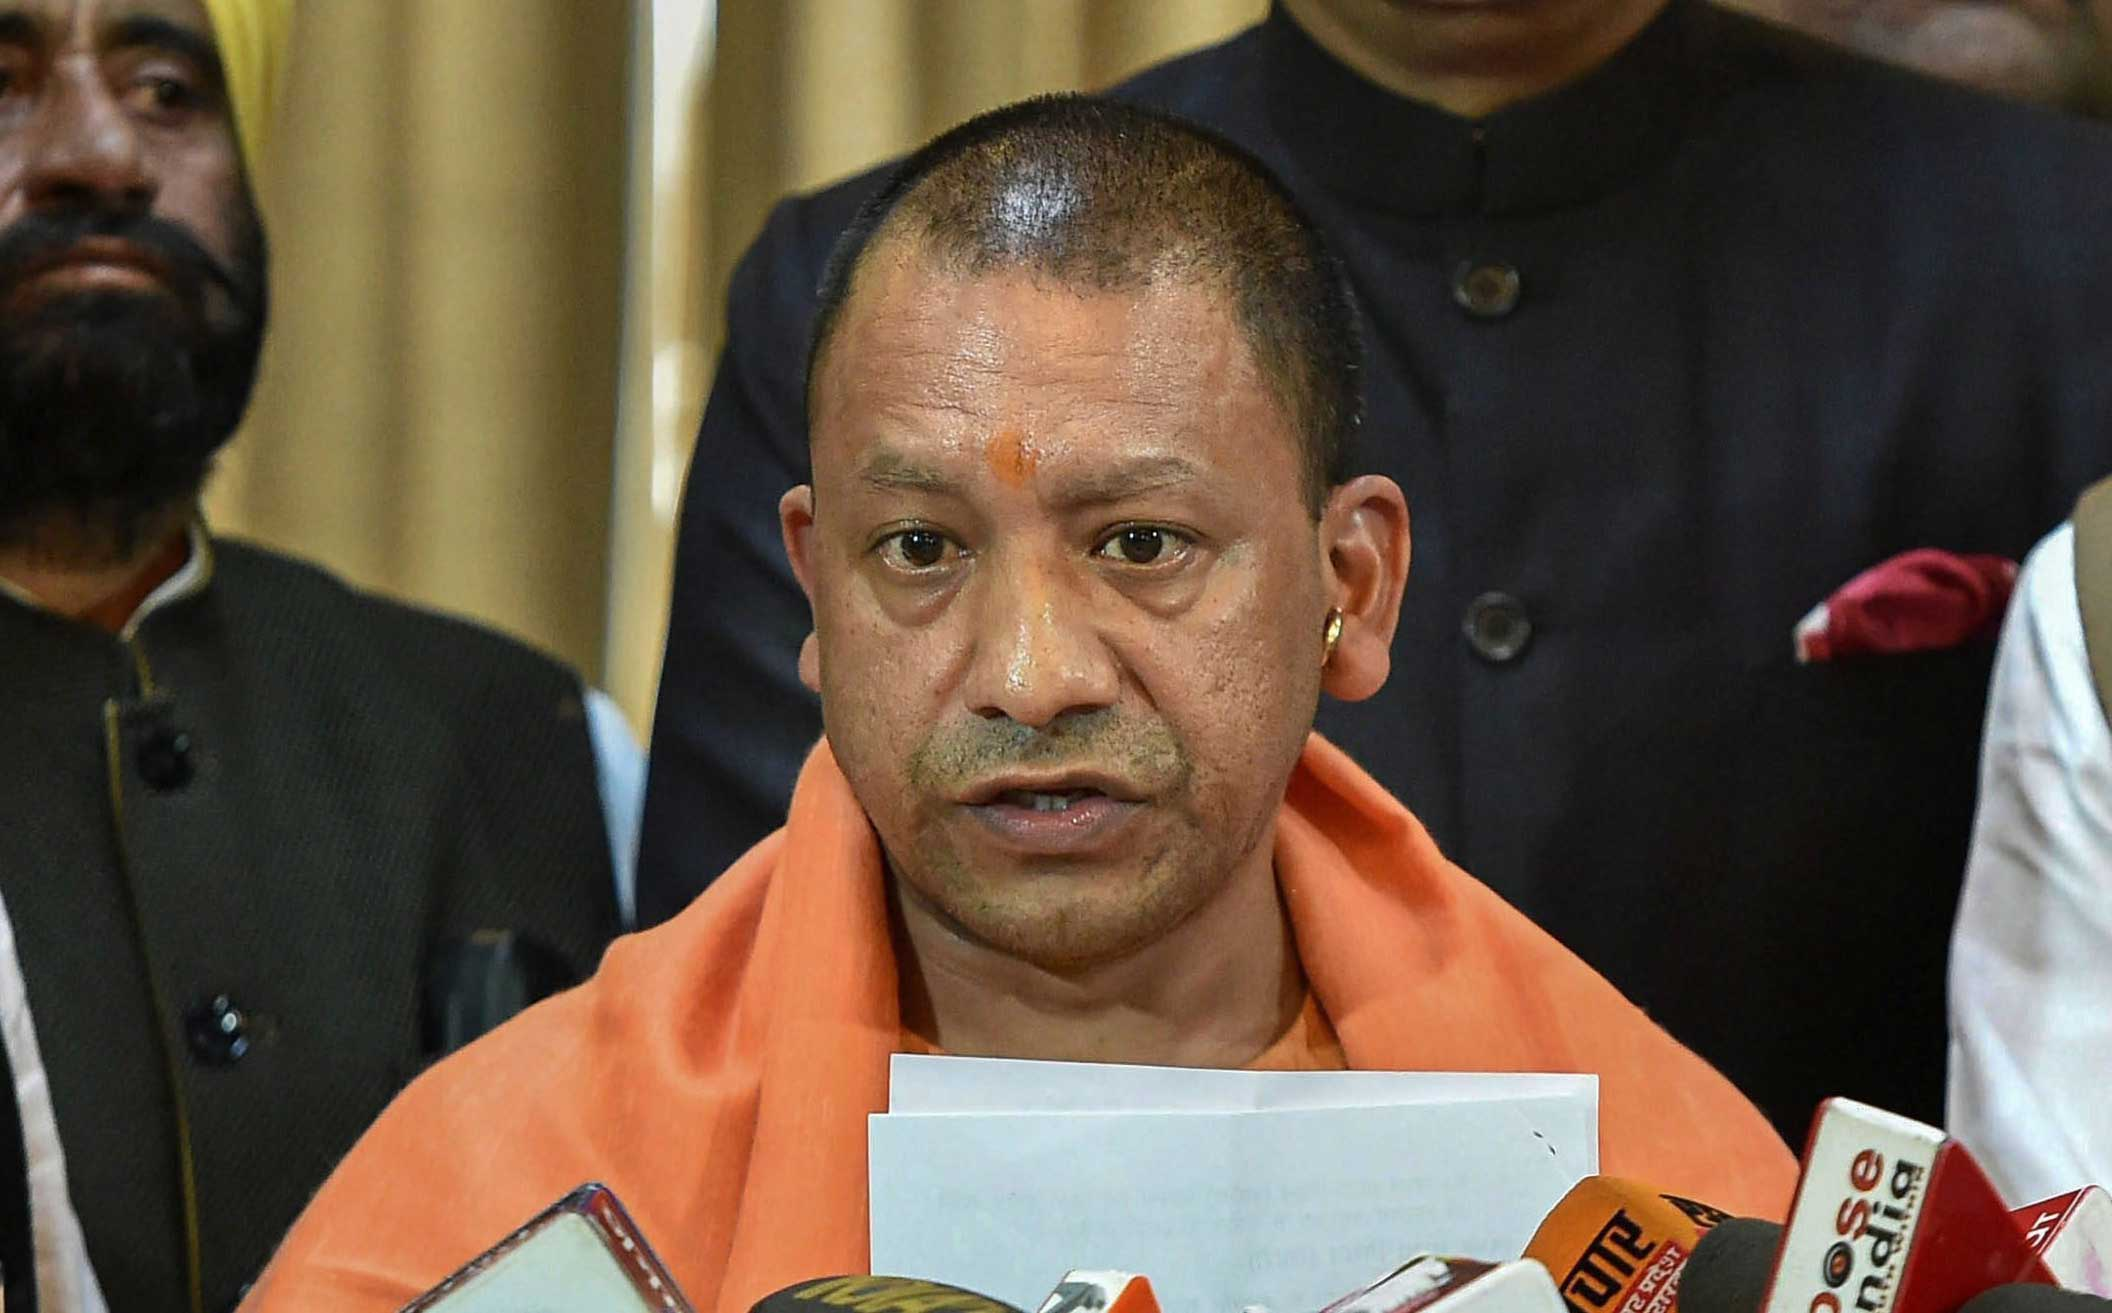 Yogi Adityanath has recommended a CBI probe. One of his ministers sought to deflect blame, saying the investment of EPF money was a policy decision taken by the previous Akhilesh Yadav government that some officials later implemented without informing their superiors.